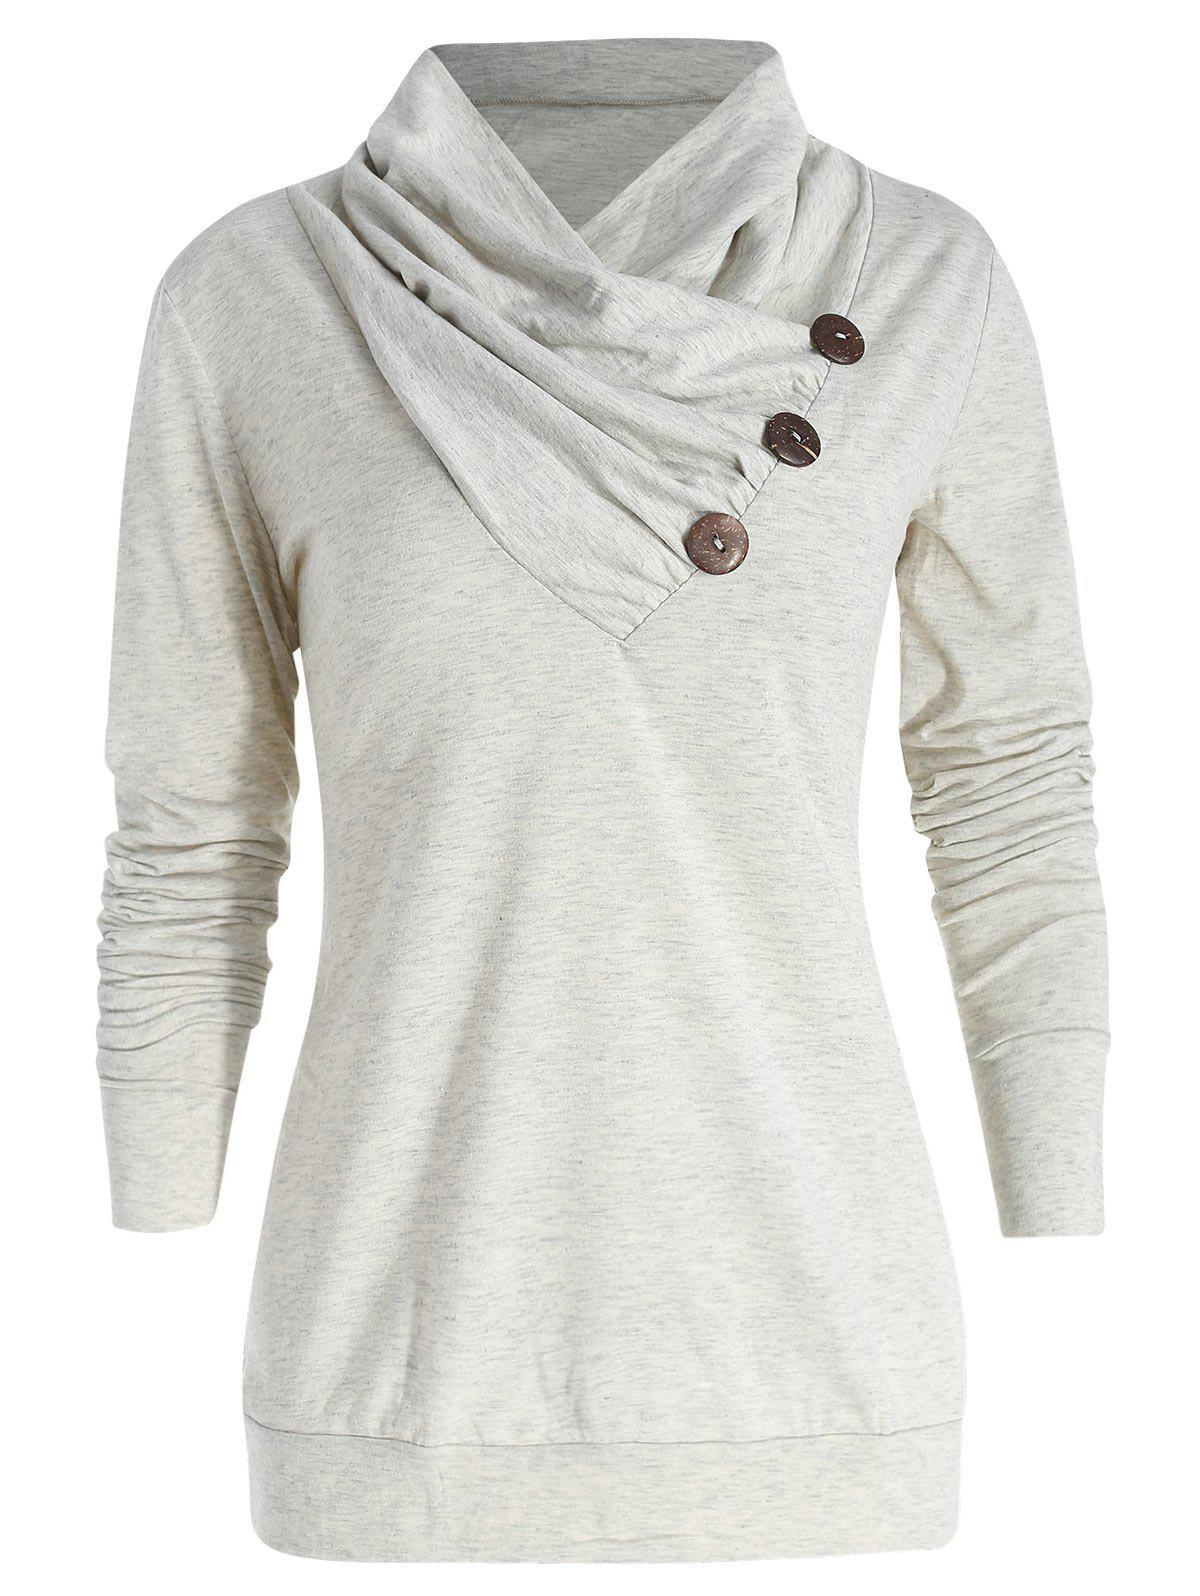 New Cowl Neck Button Embellished T Shirt